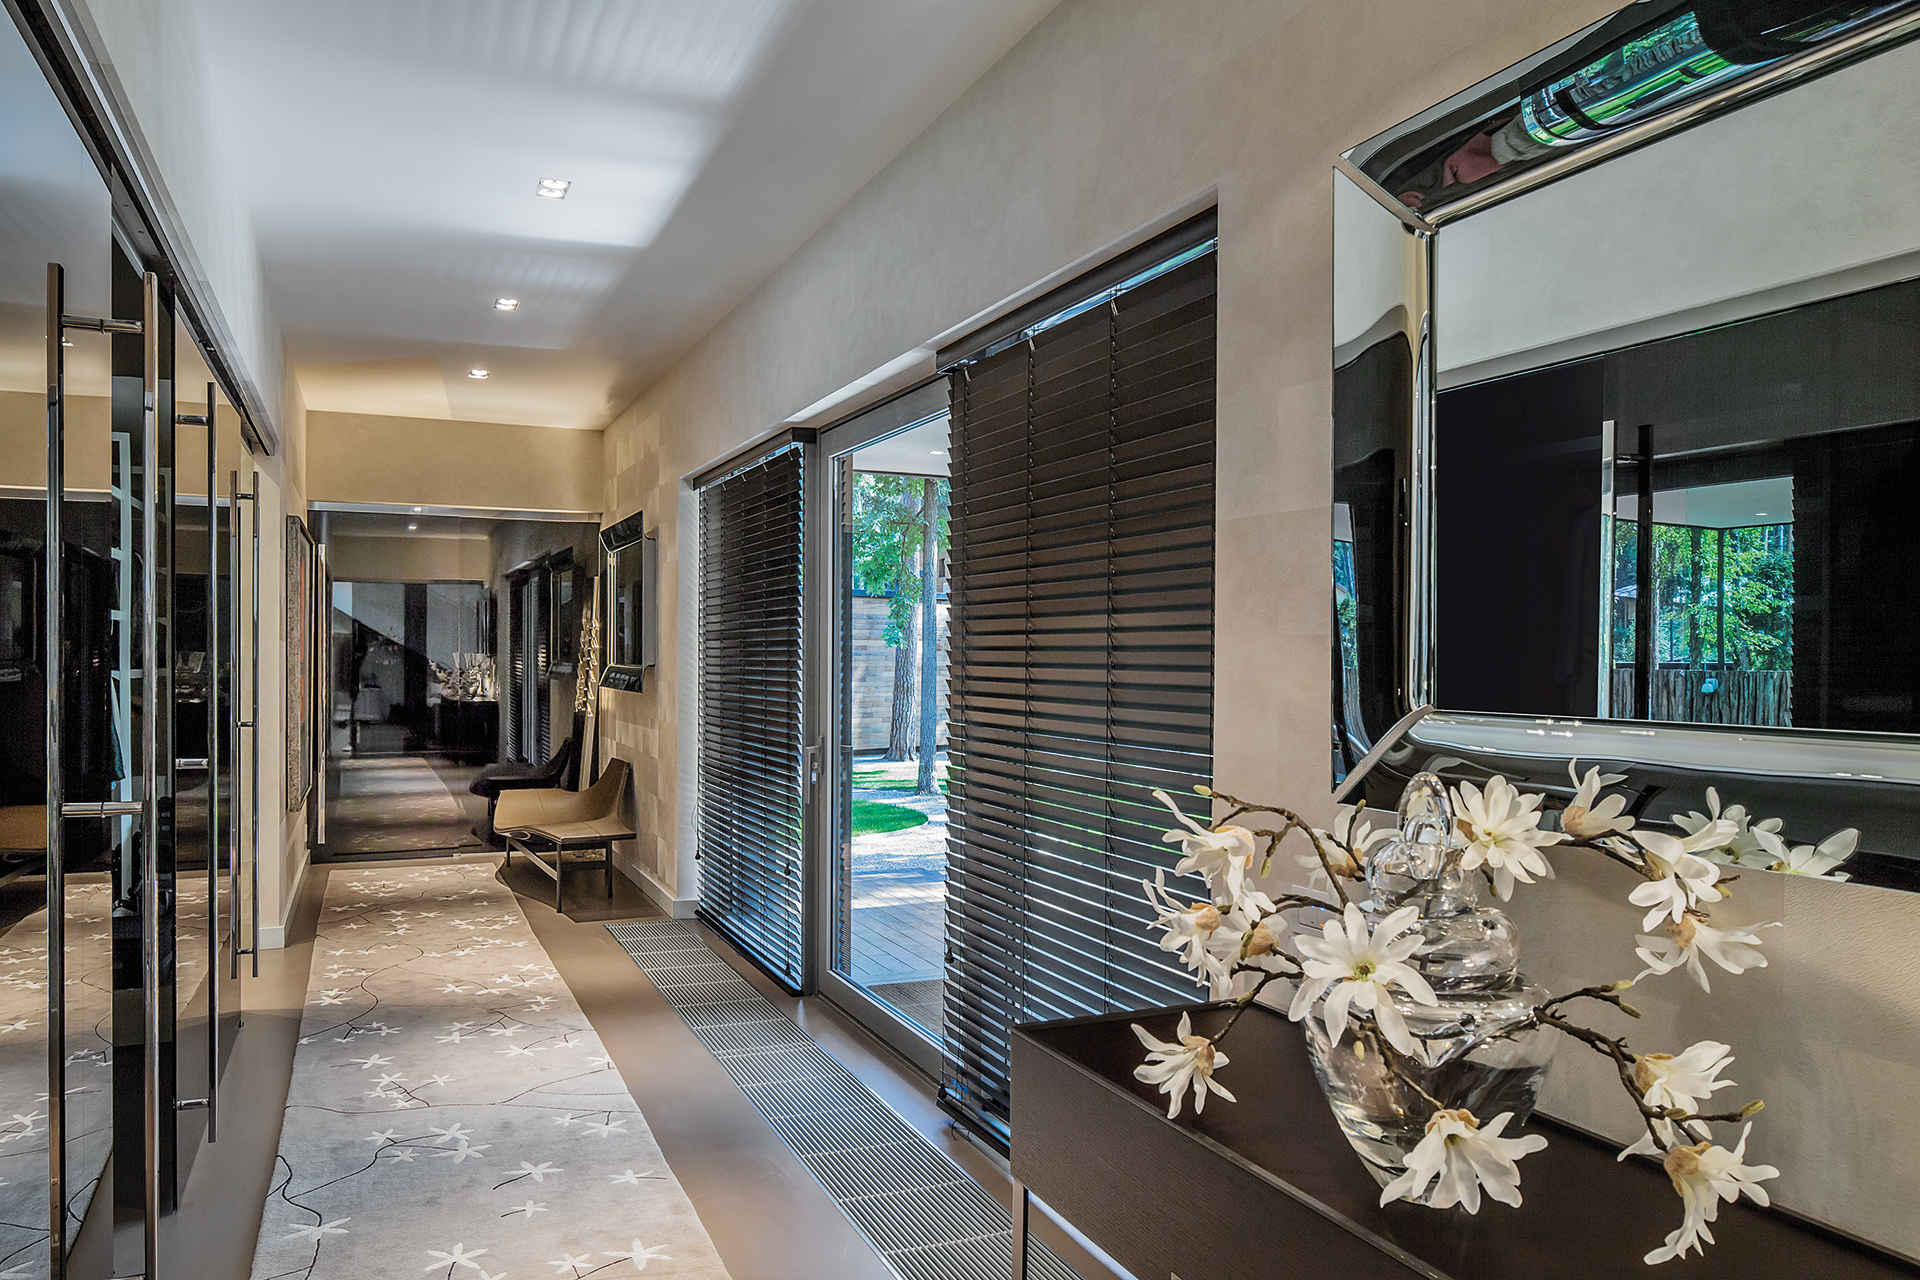 Hallway leading to the pool with blind covered doors leading outside